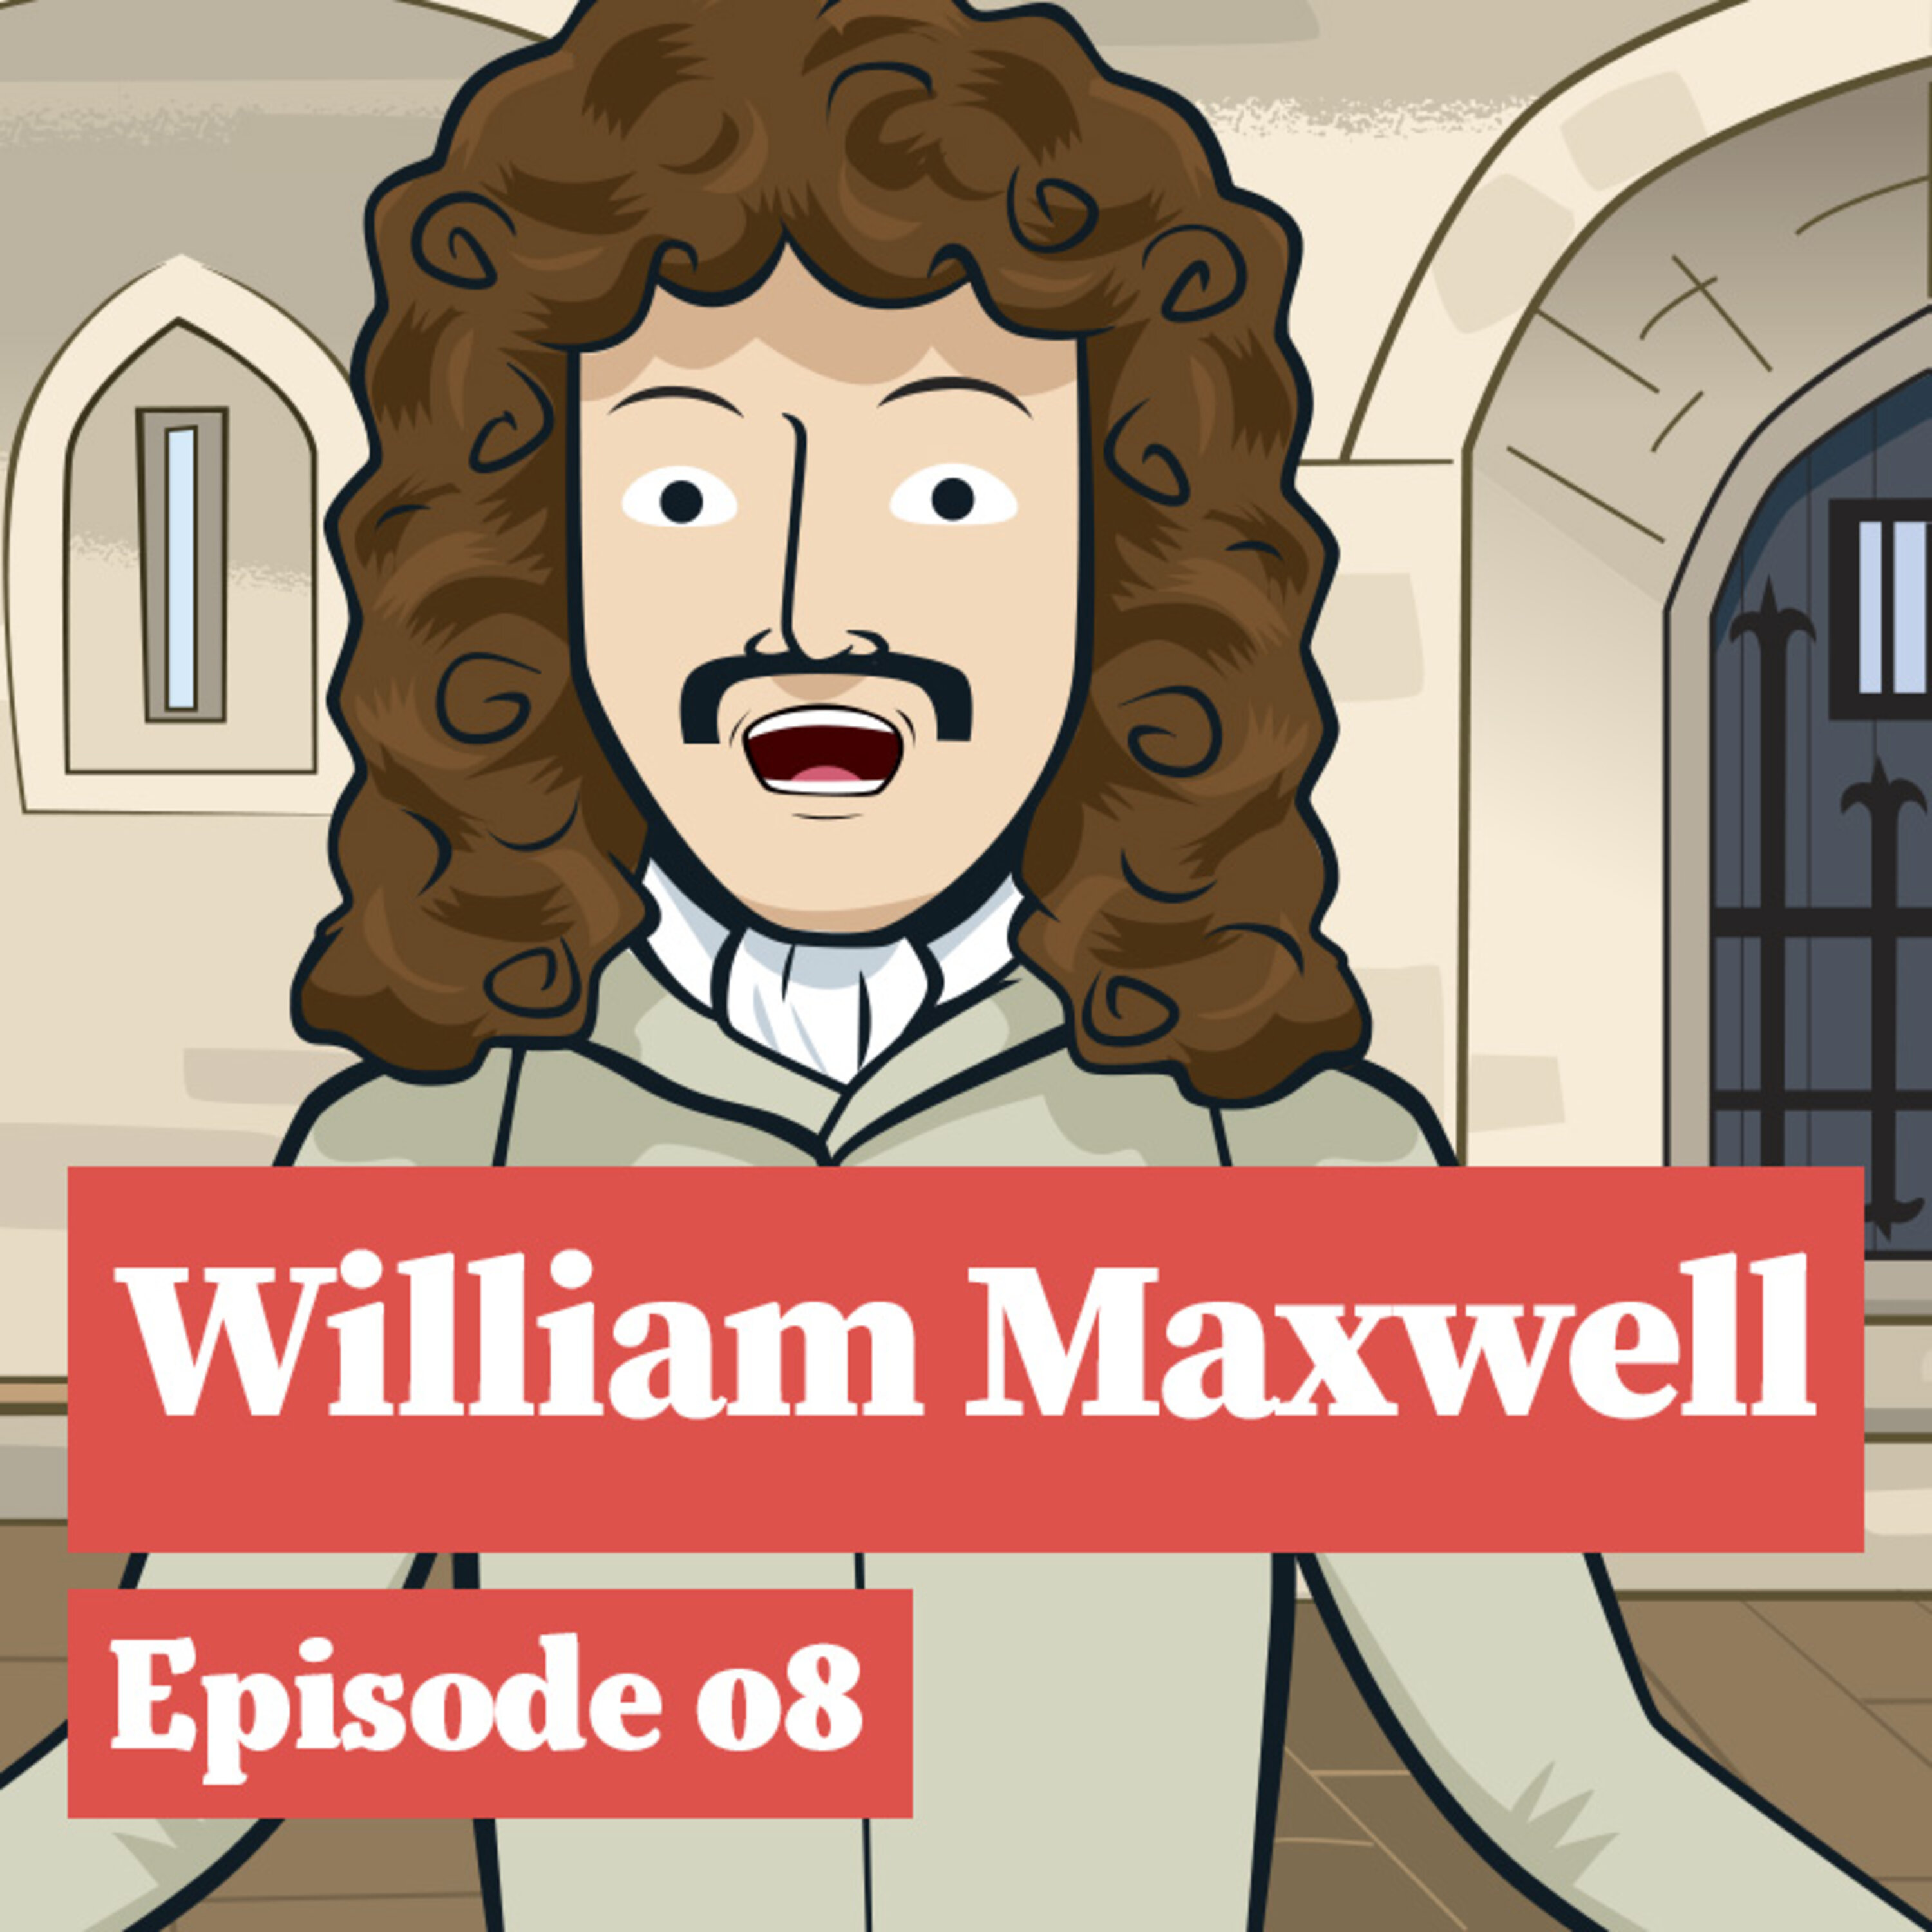 William Maxwell escapes the Tower!